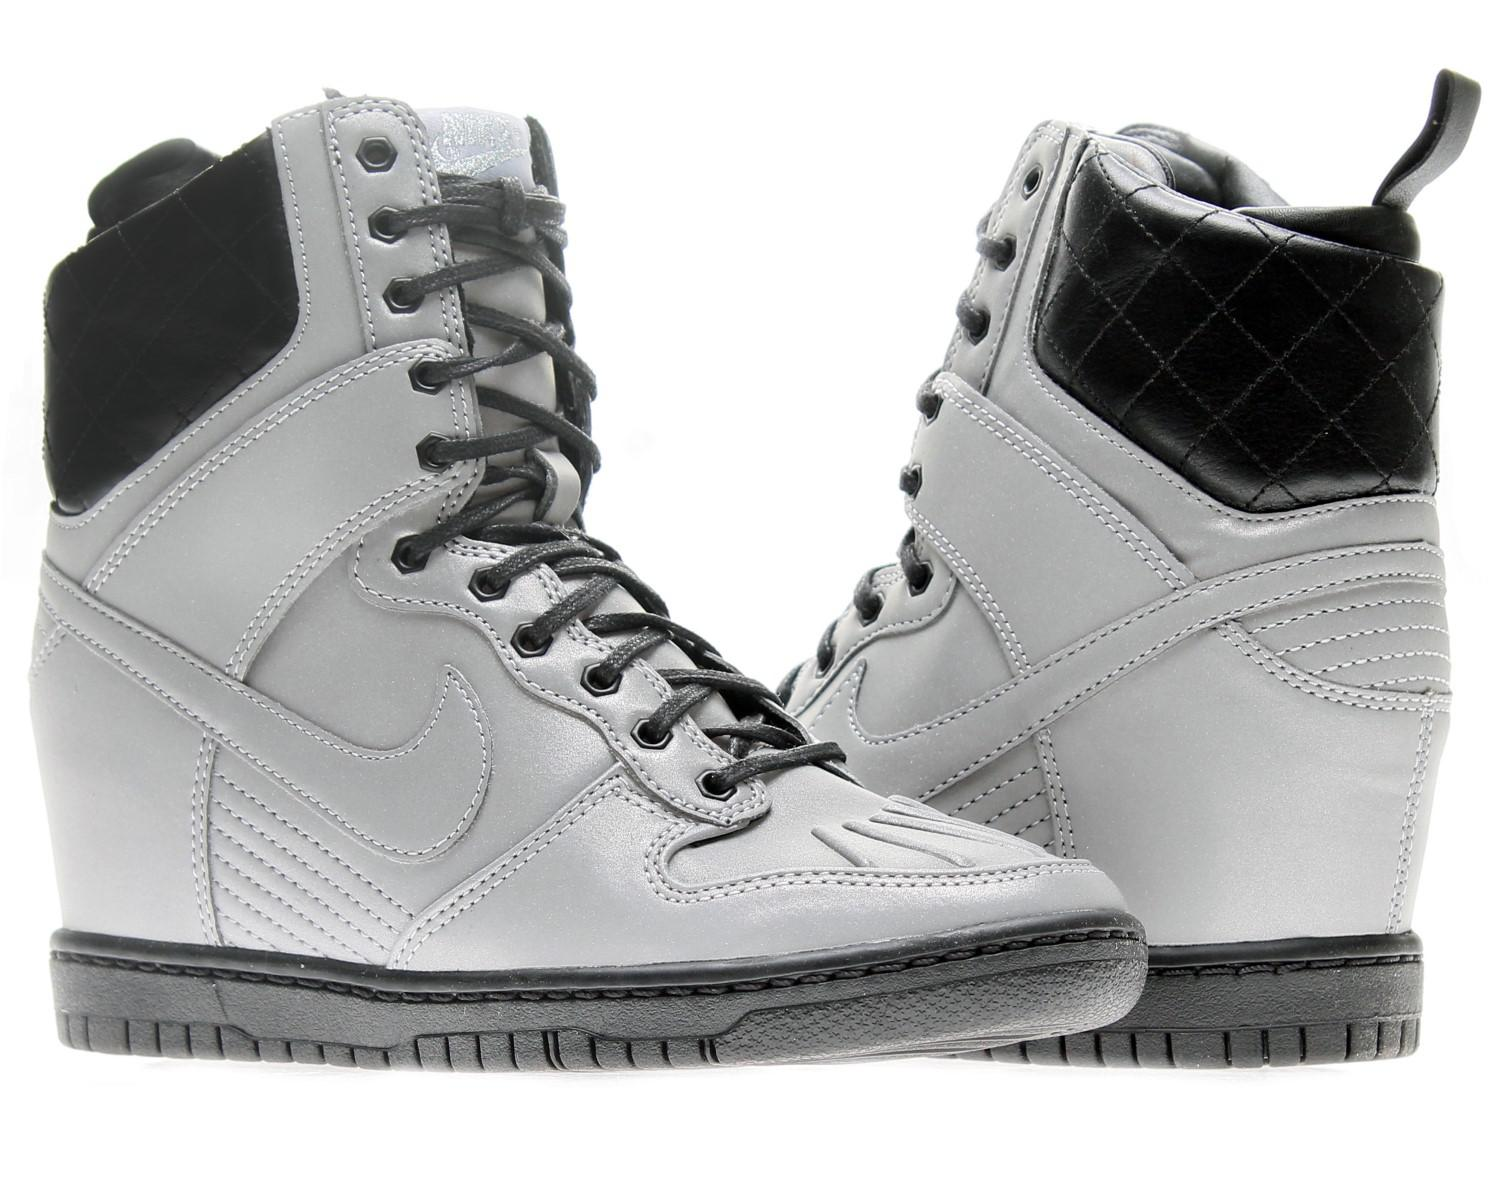 check out 3149e 1cdbf Nike Dunk Sky Hi Sneakerboot Premium Wedge Basketball Shoes Size 9 ...